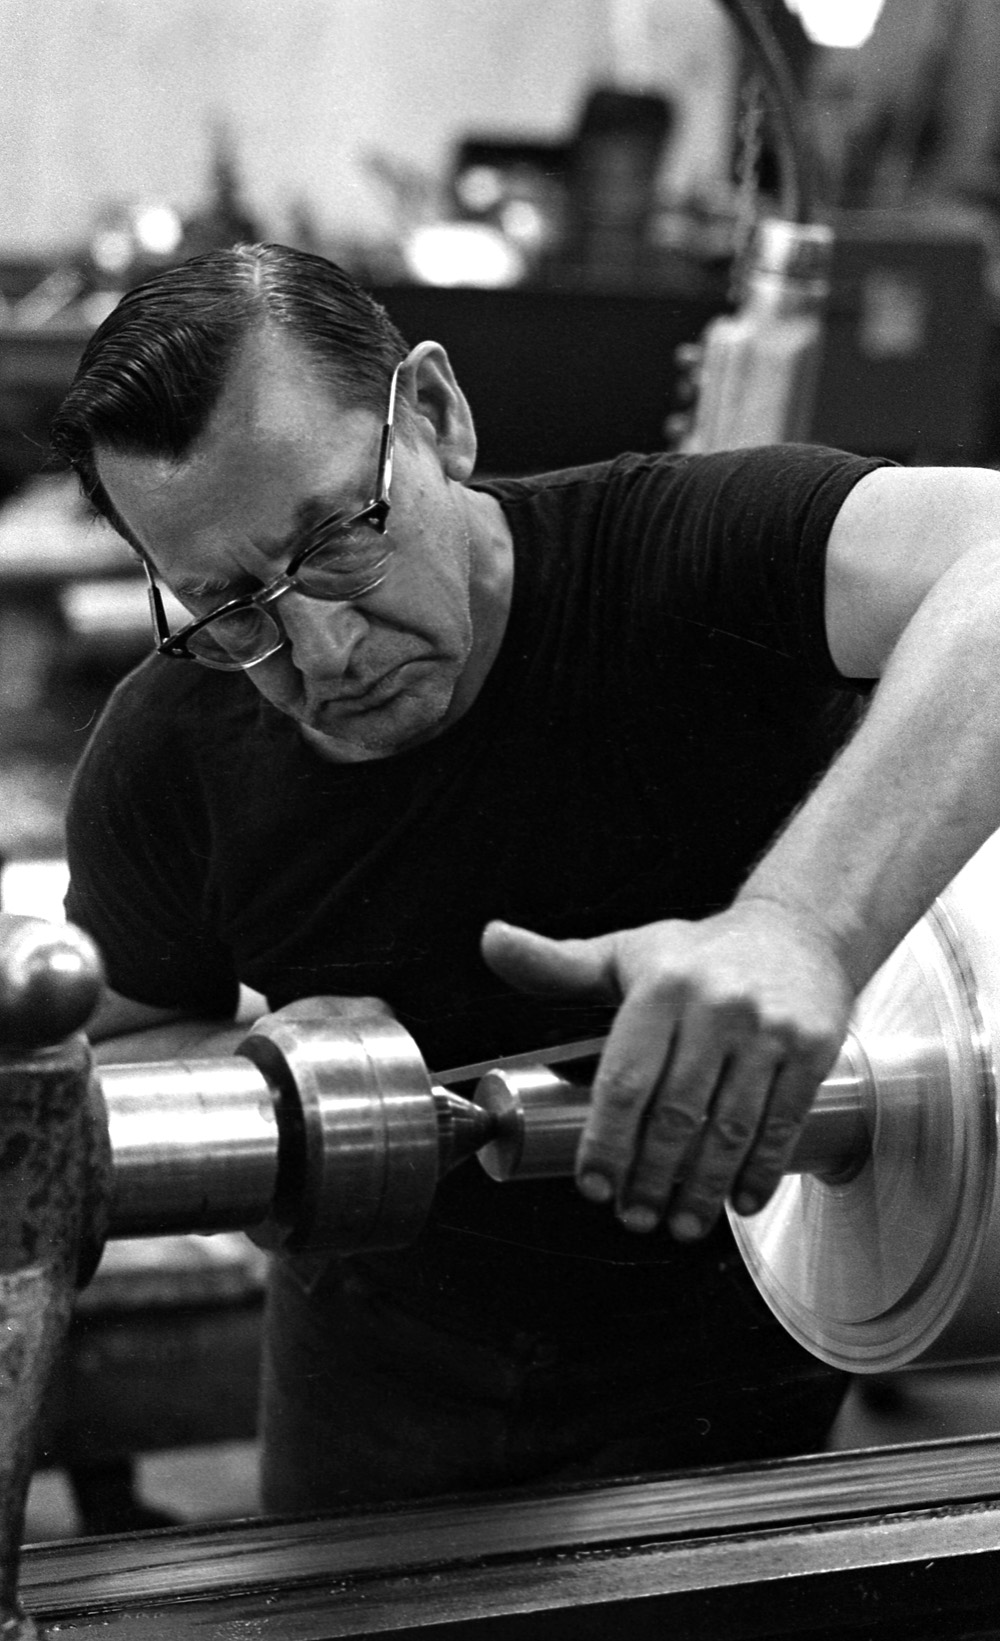 Image of Lathe operator, Rodney Hunt co., 1974